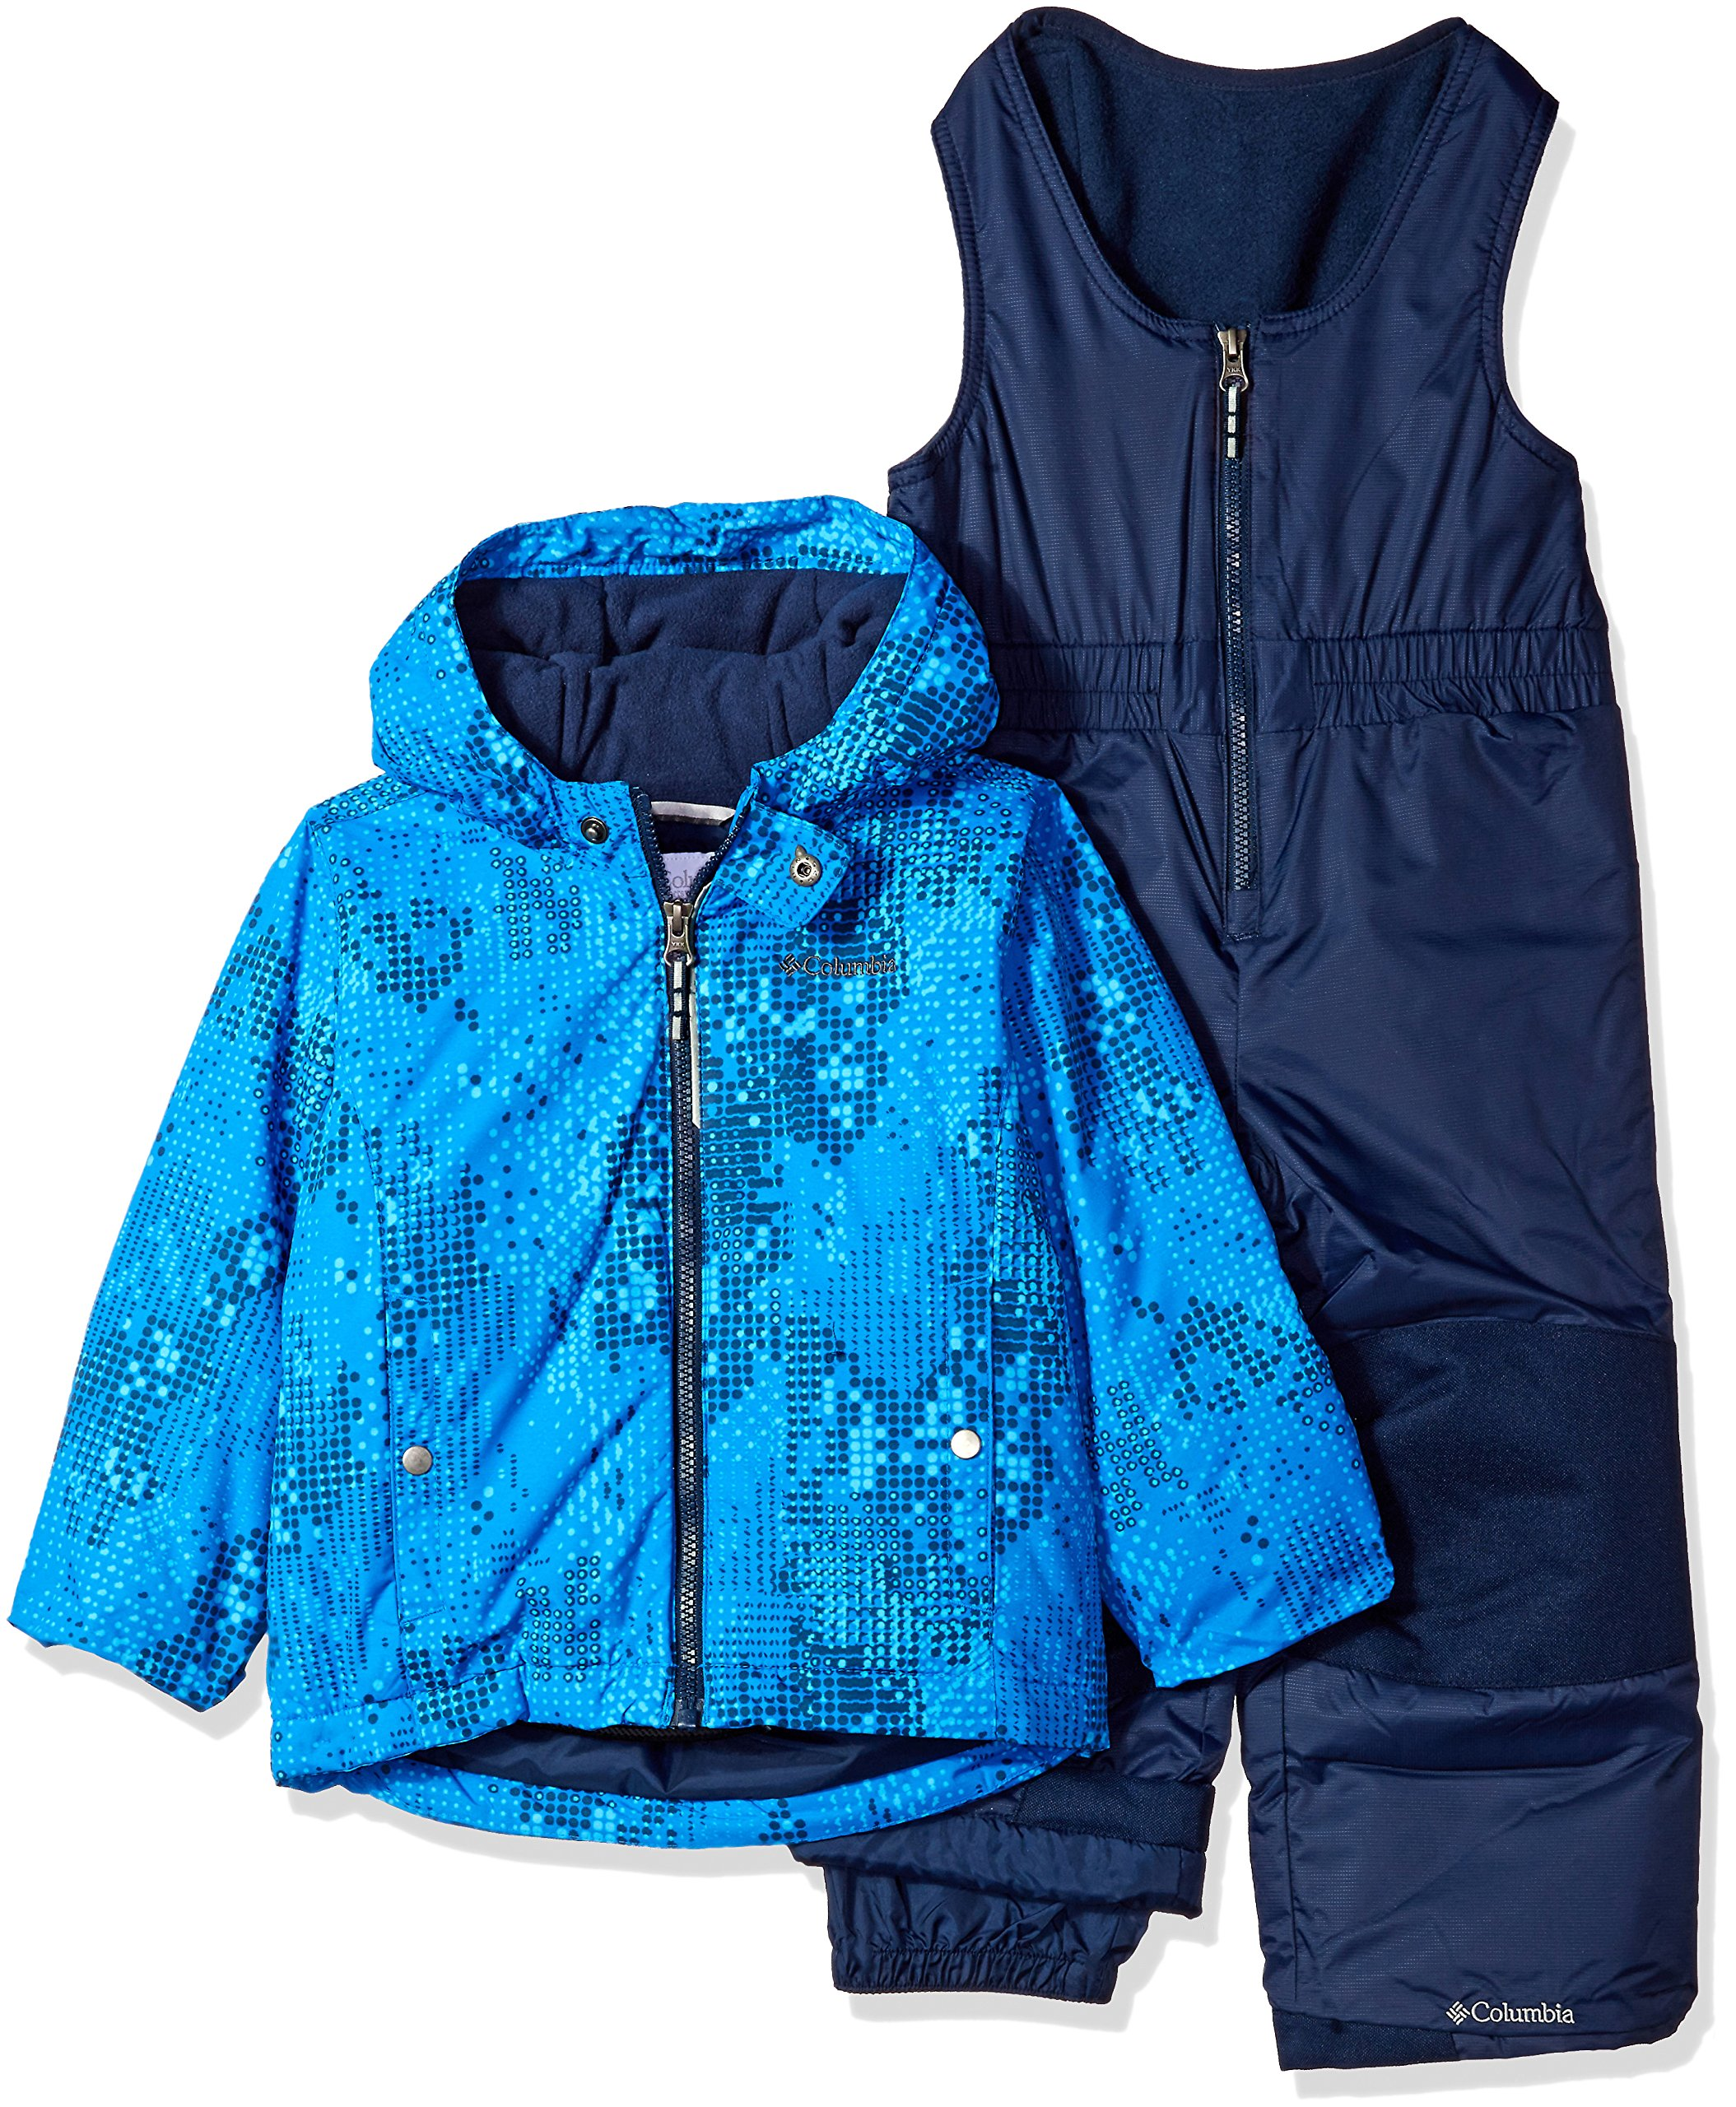 Columbia Little Boys' Frosty Slope Set, Super Blue Energy Dot, 4T by Columbia (Image #1)